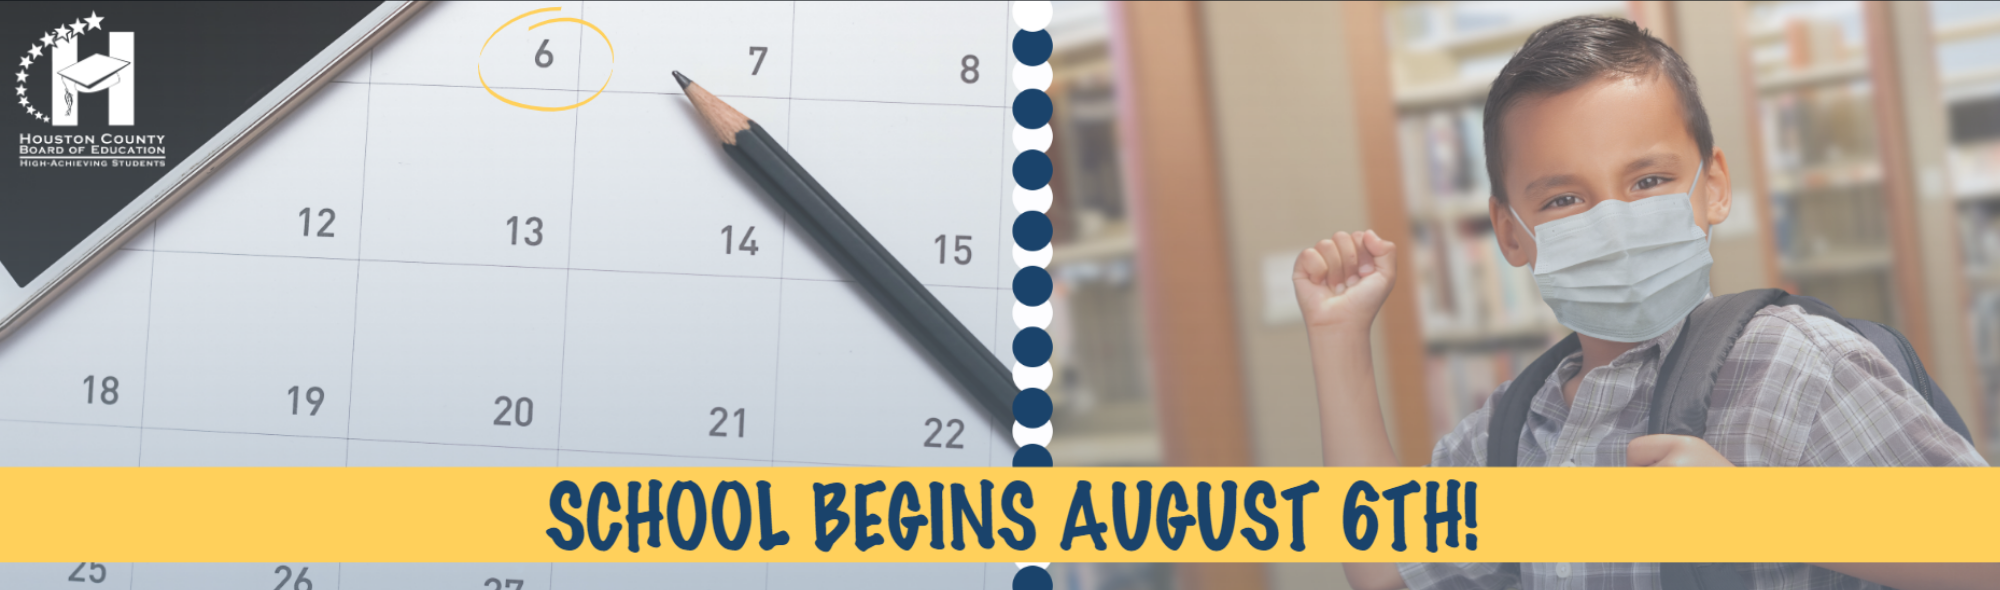 Back to School on August 6